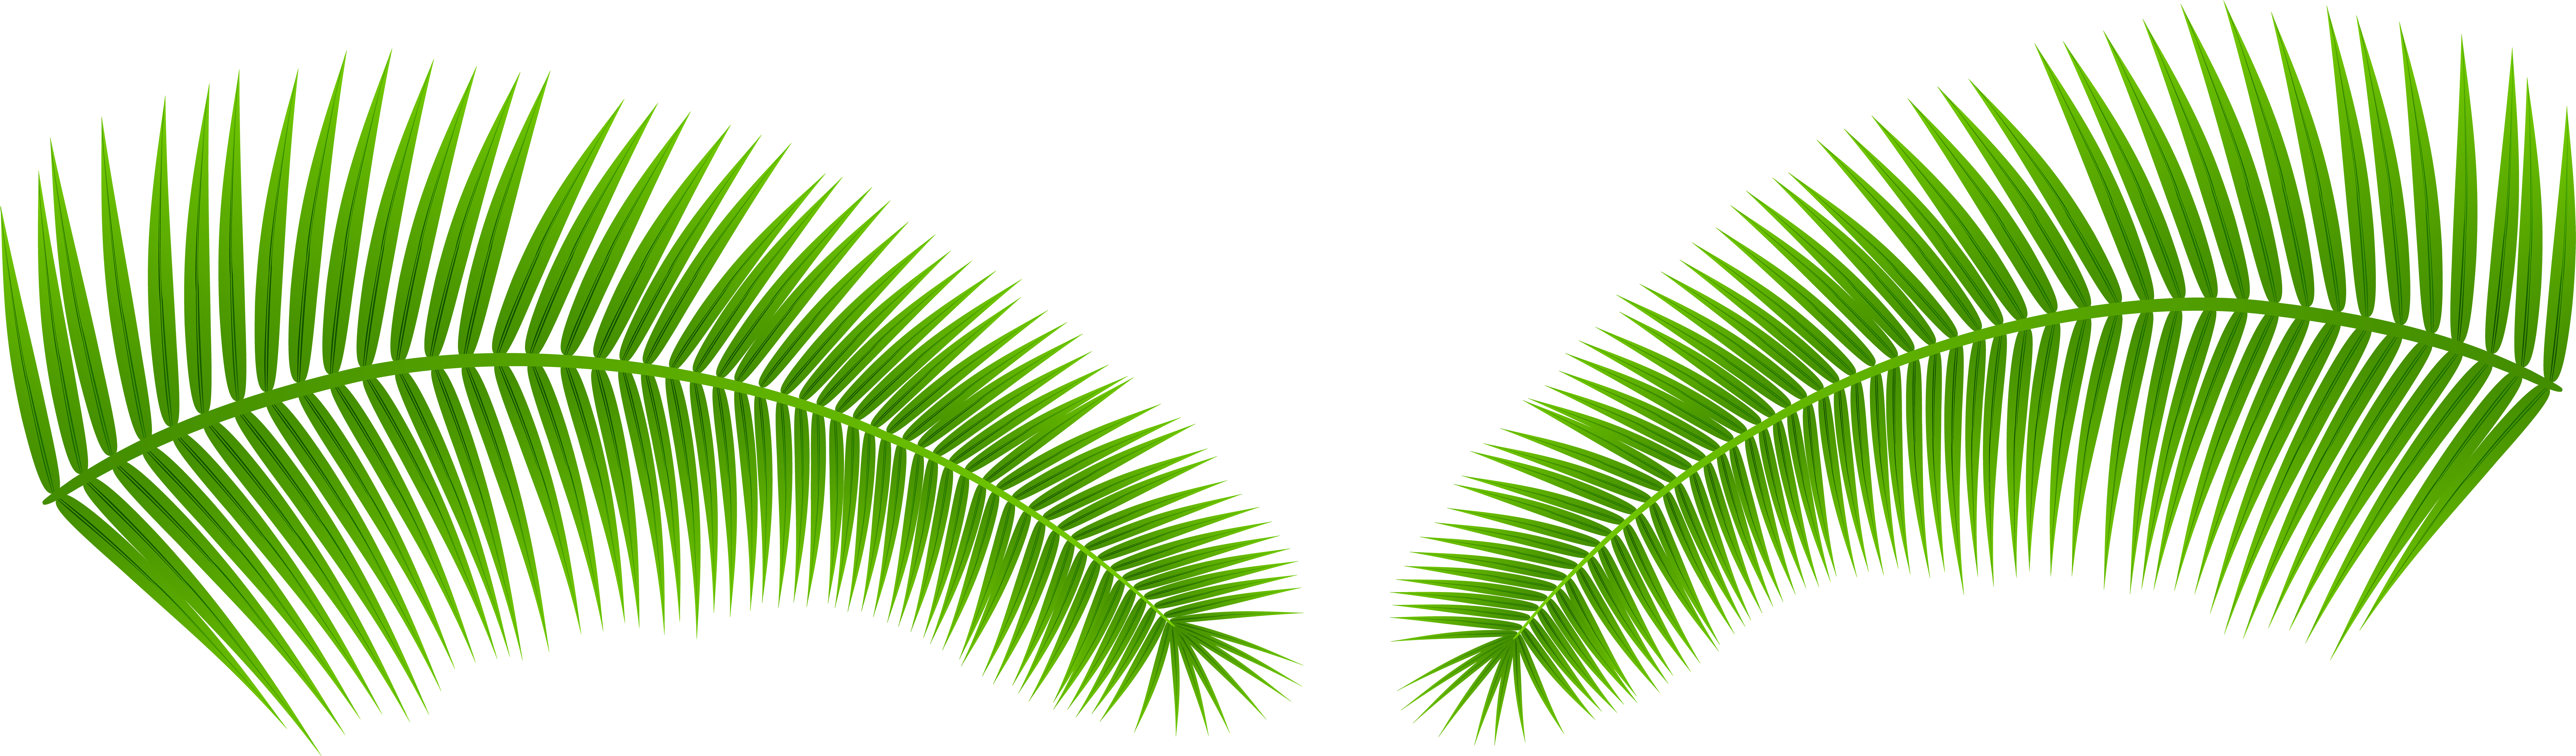 Download hd leaves clip. Palm leaf transparent png image free download